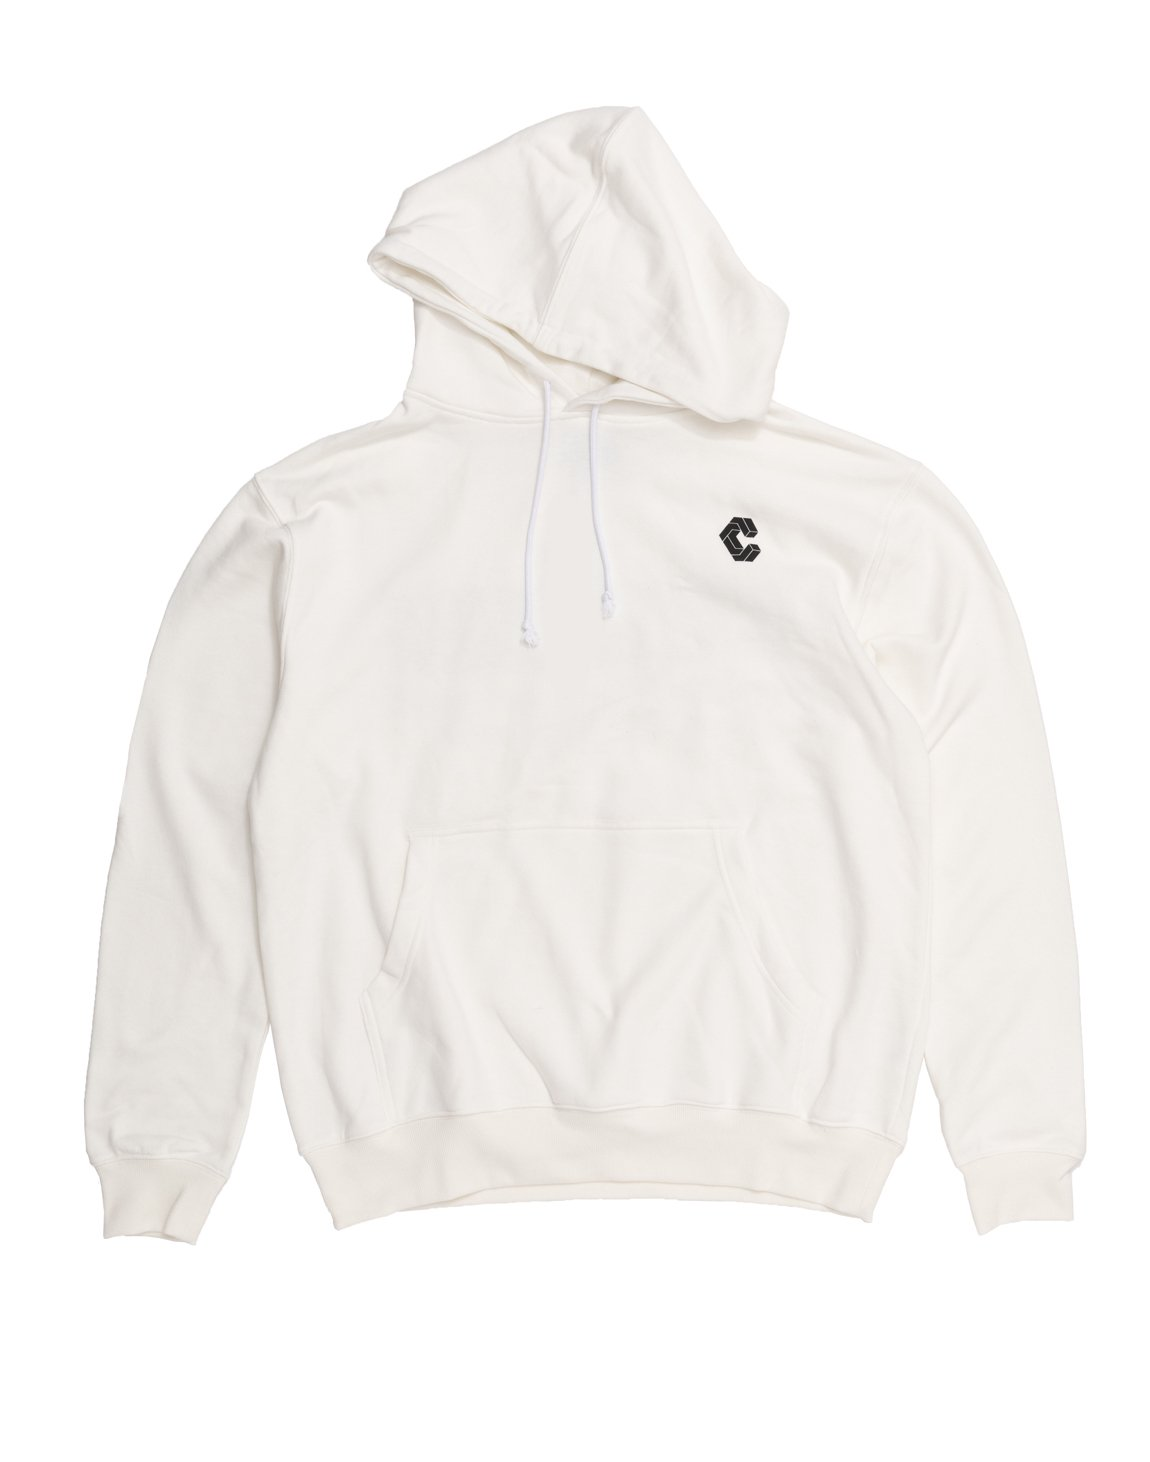 <img class='new_mark_img1' src='https://img.shop-pro.jp/img/new/icons1.gif' style='border:none;display:inline;margin:0px;padding:0px;width:auto;' />CRONOS GUESS THE NUMBERS  PARKA 【WHITE】